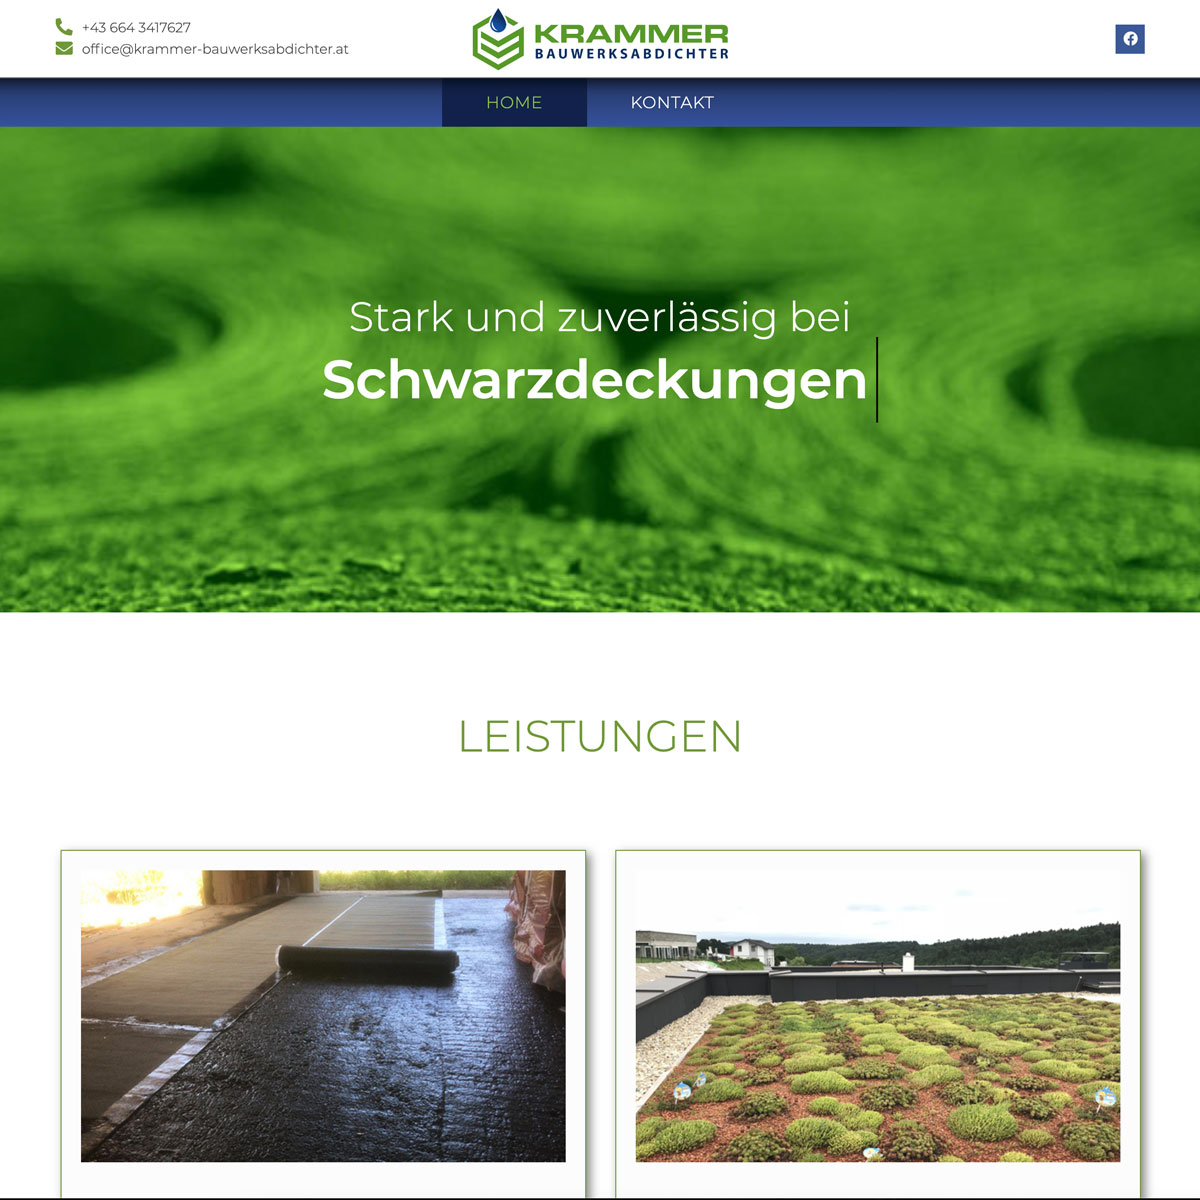 Website Krammer Bauwerksabichter